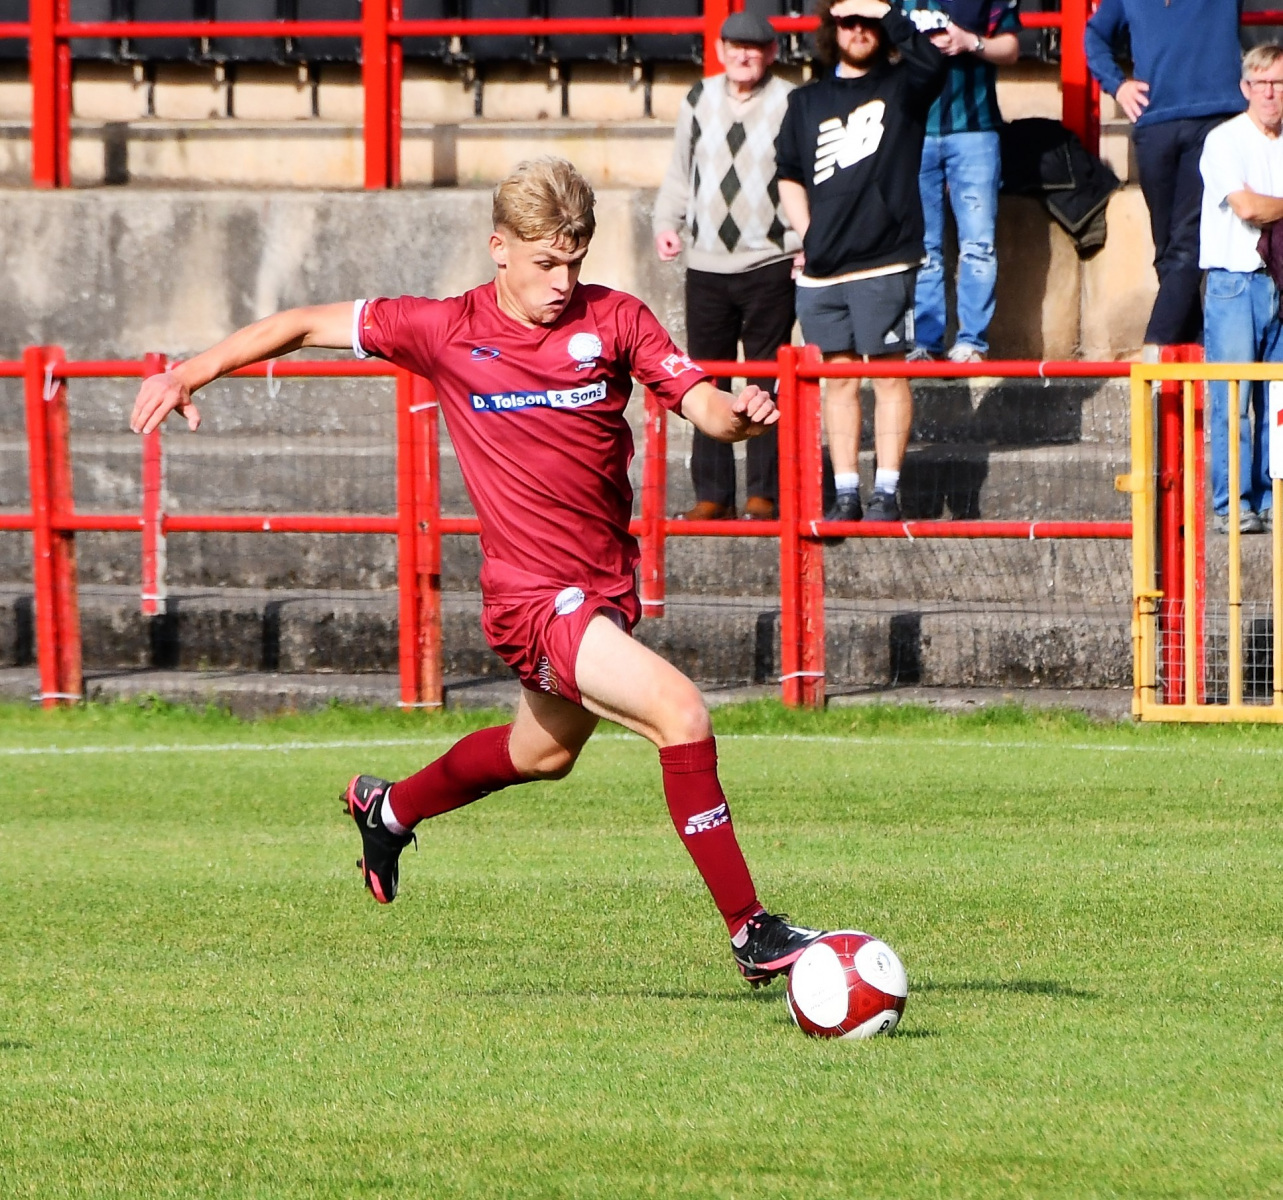 Keelan-Leslie-made-his-debut-for-the-Reds-as-a-substitute-Ben-Challis